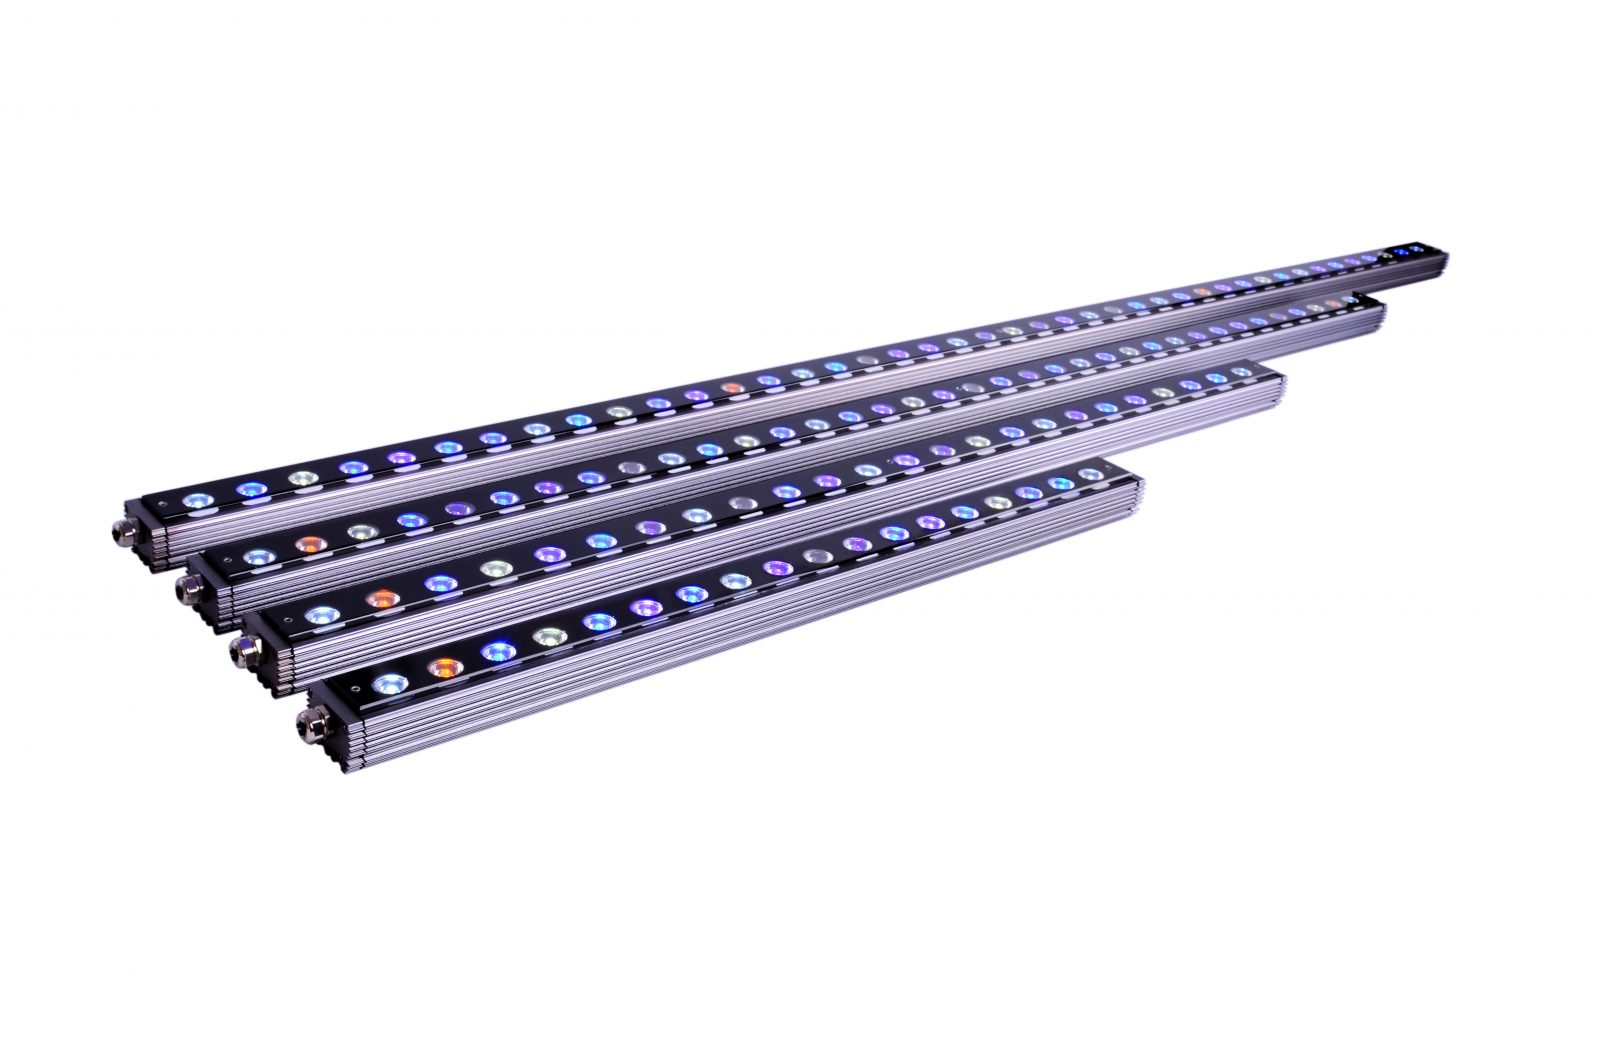 Orphek-OR3-Reef-day-Aquarium-LED-light